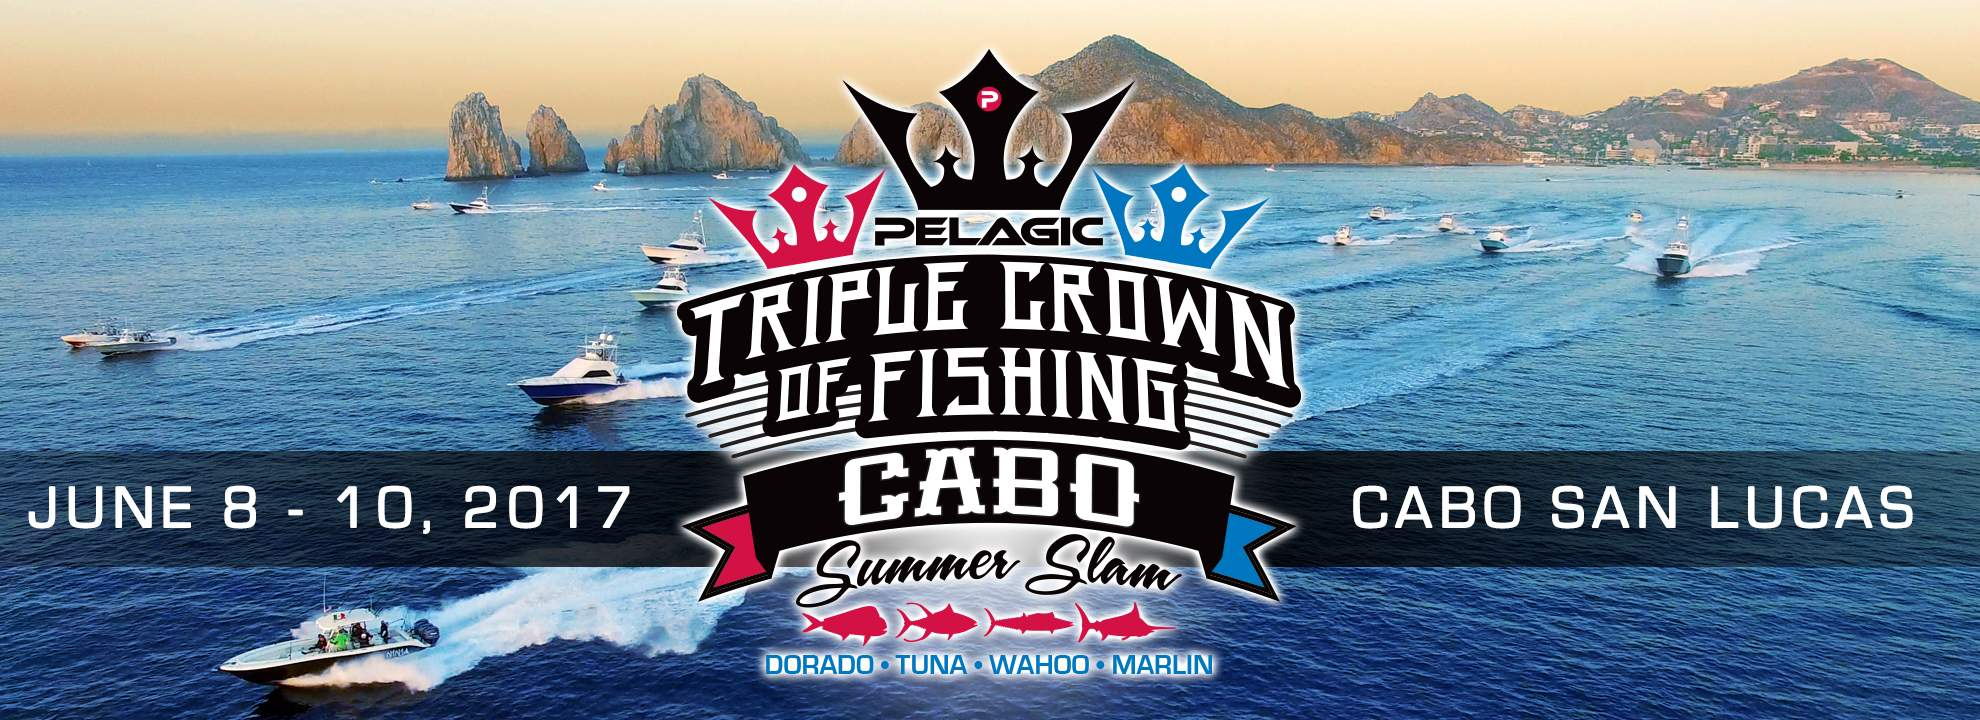 2017 PELAGIC Triple Crown of Fishing Tournament_Cabo Summer Slam